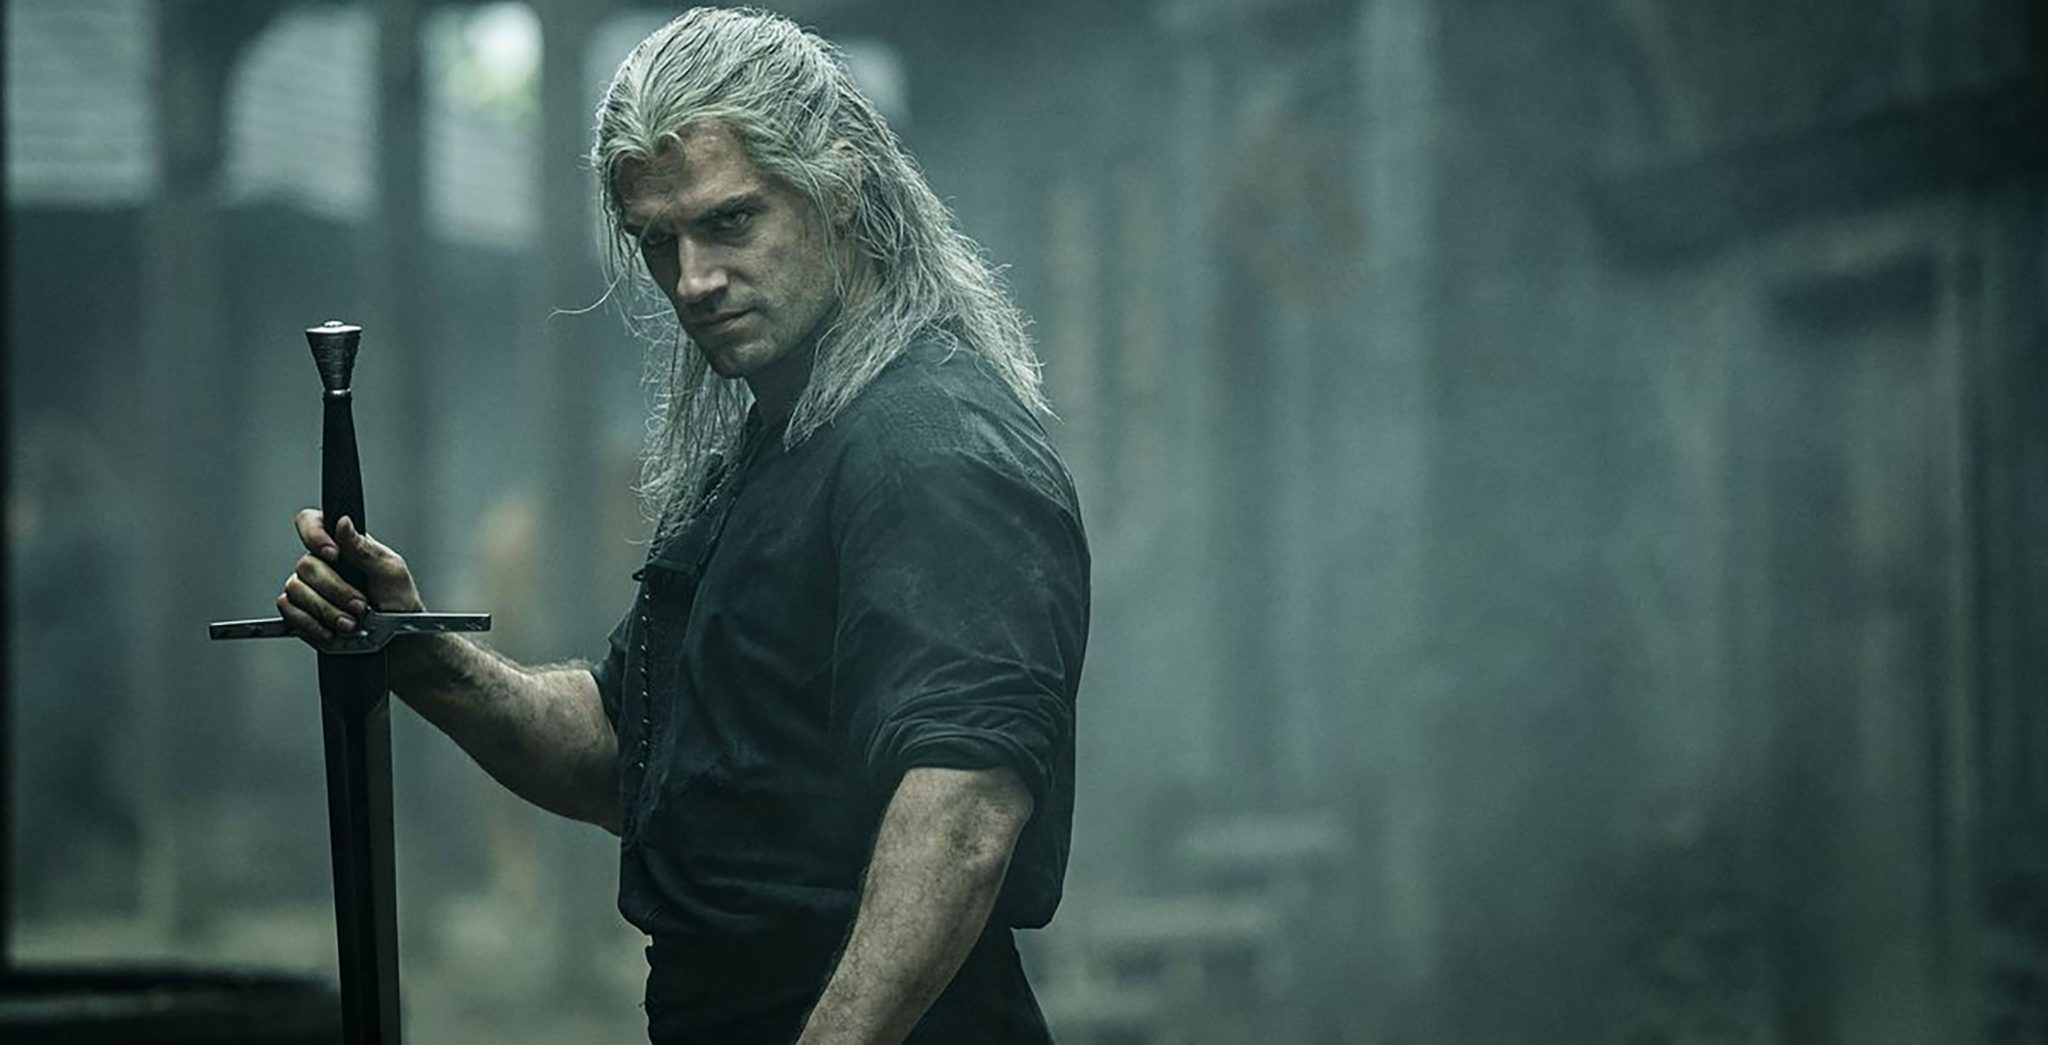 Netflix's The Witcher Season 2 has wrapped filming